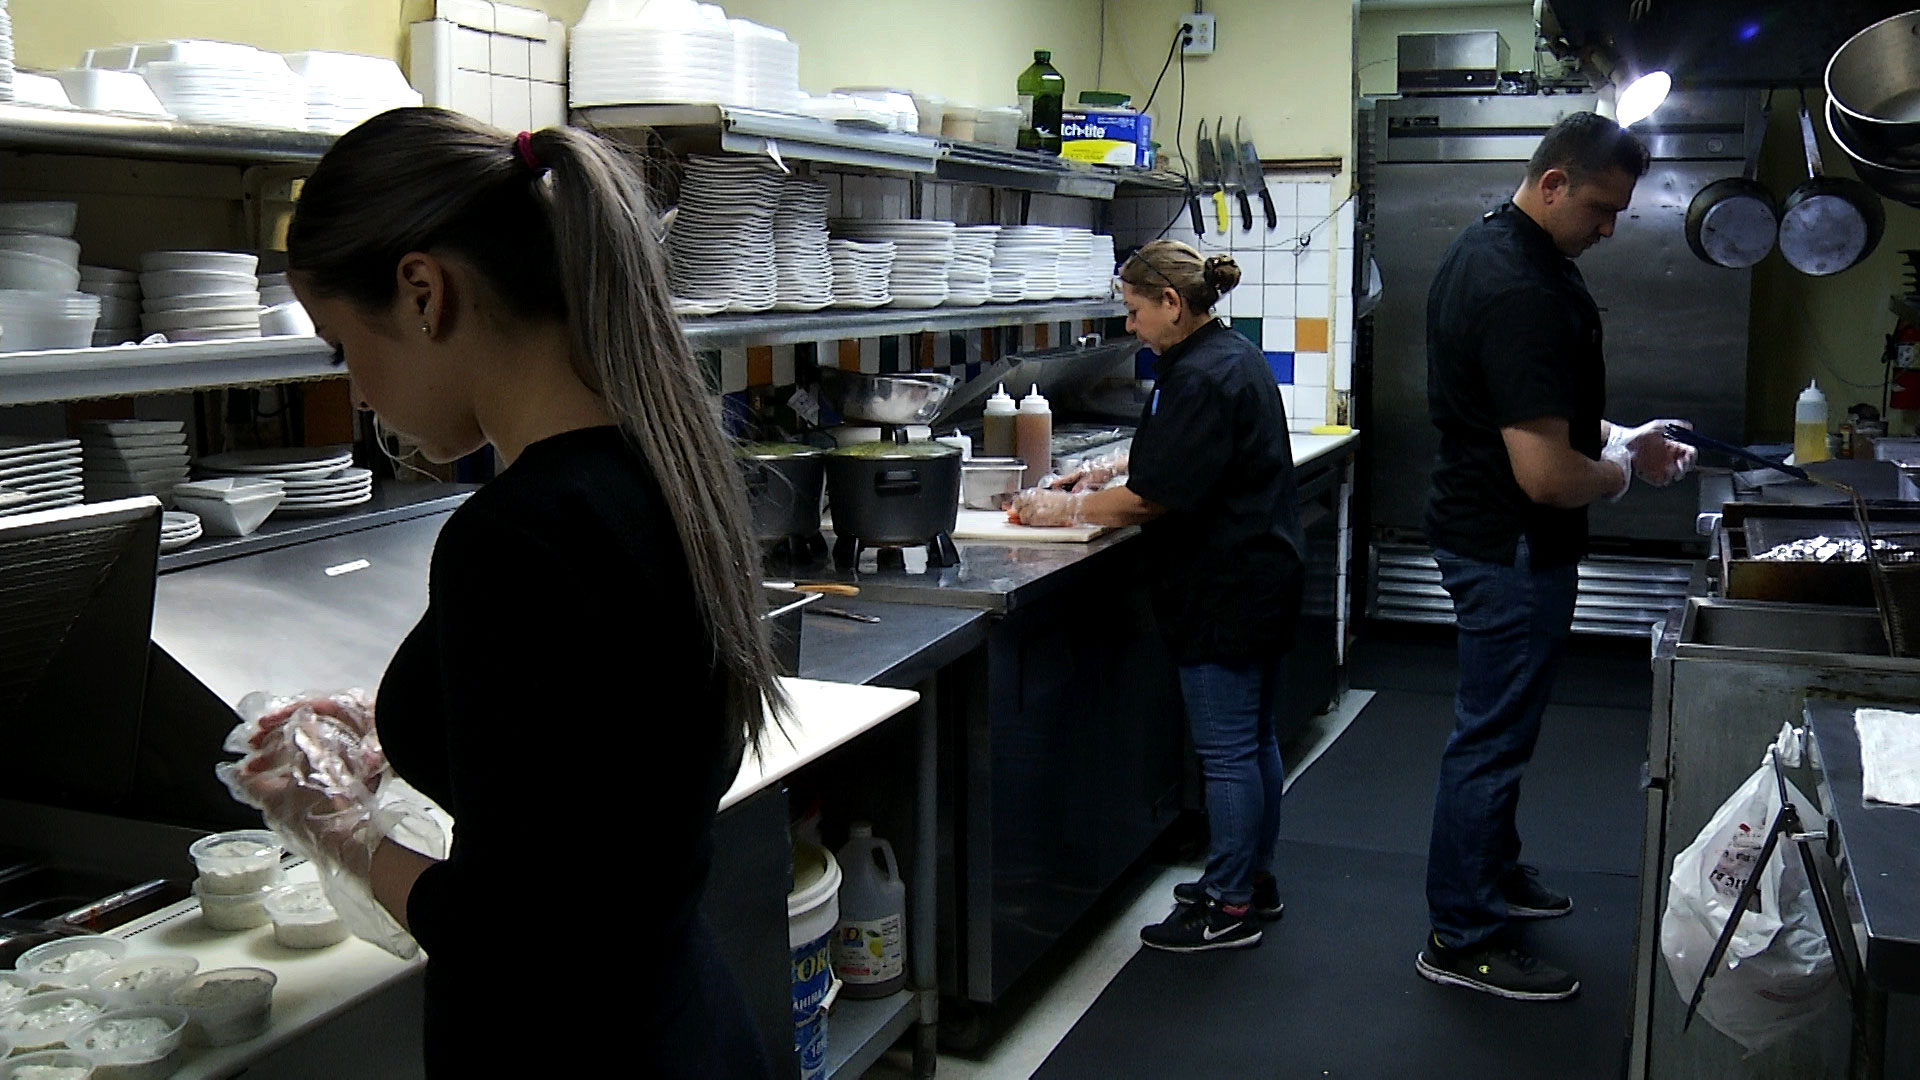 The owner of Shish Kebab House of Tucson (center) and employees work in the kitchen to fill to-go orders. The restaurant saw a sharp decline in business when it had to halt dine-in service during the Arizona's stay-at-home order. April 2020.